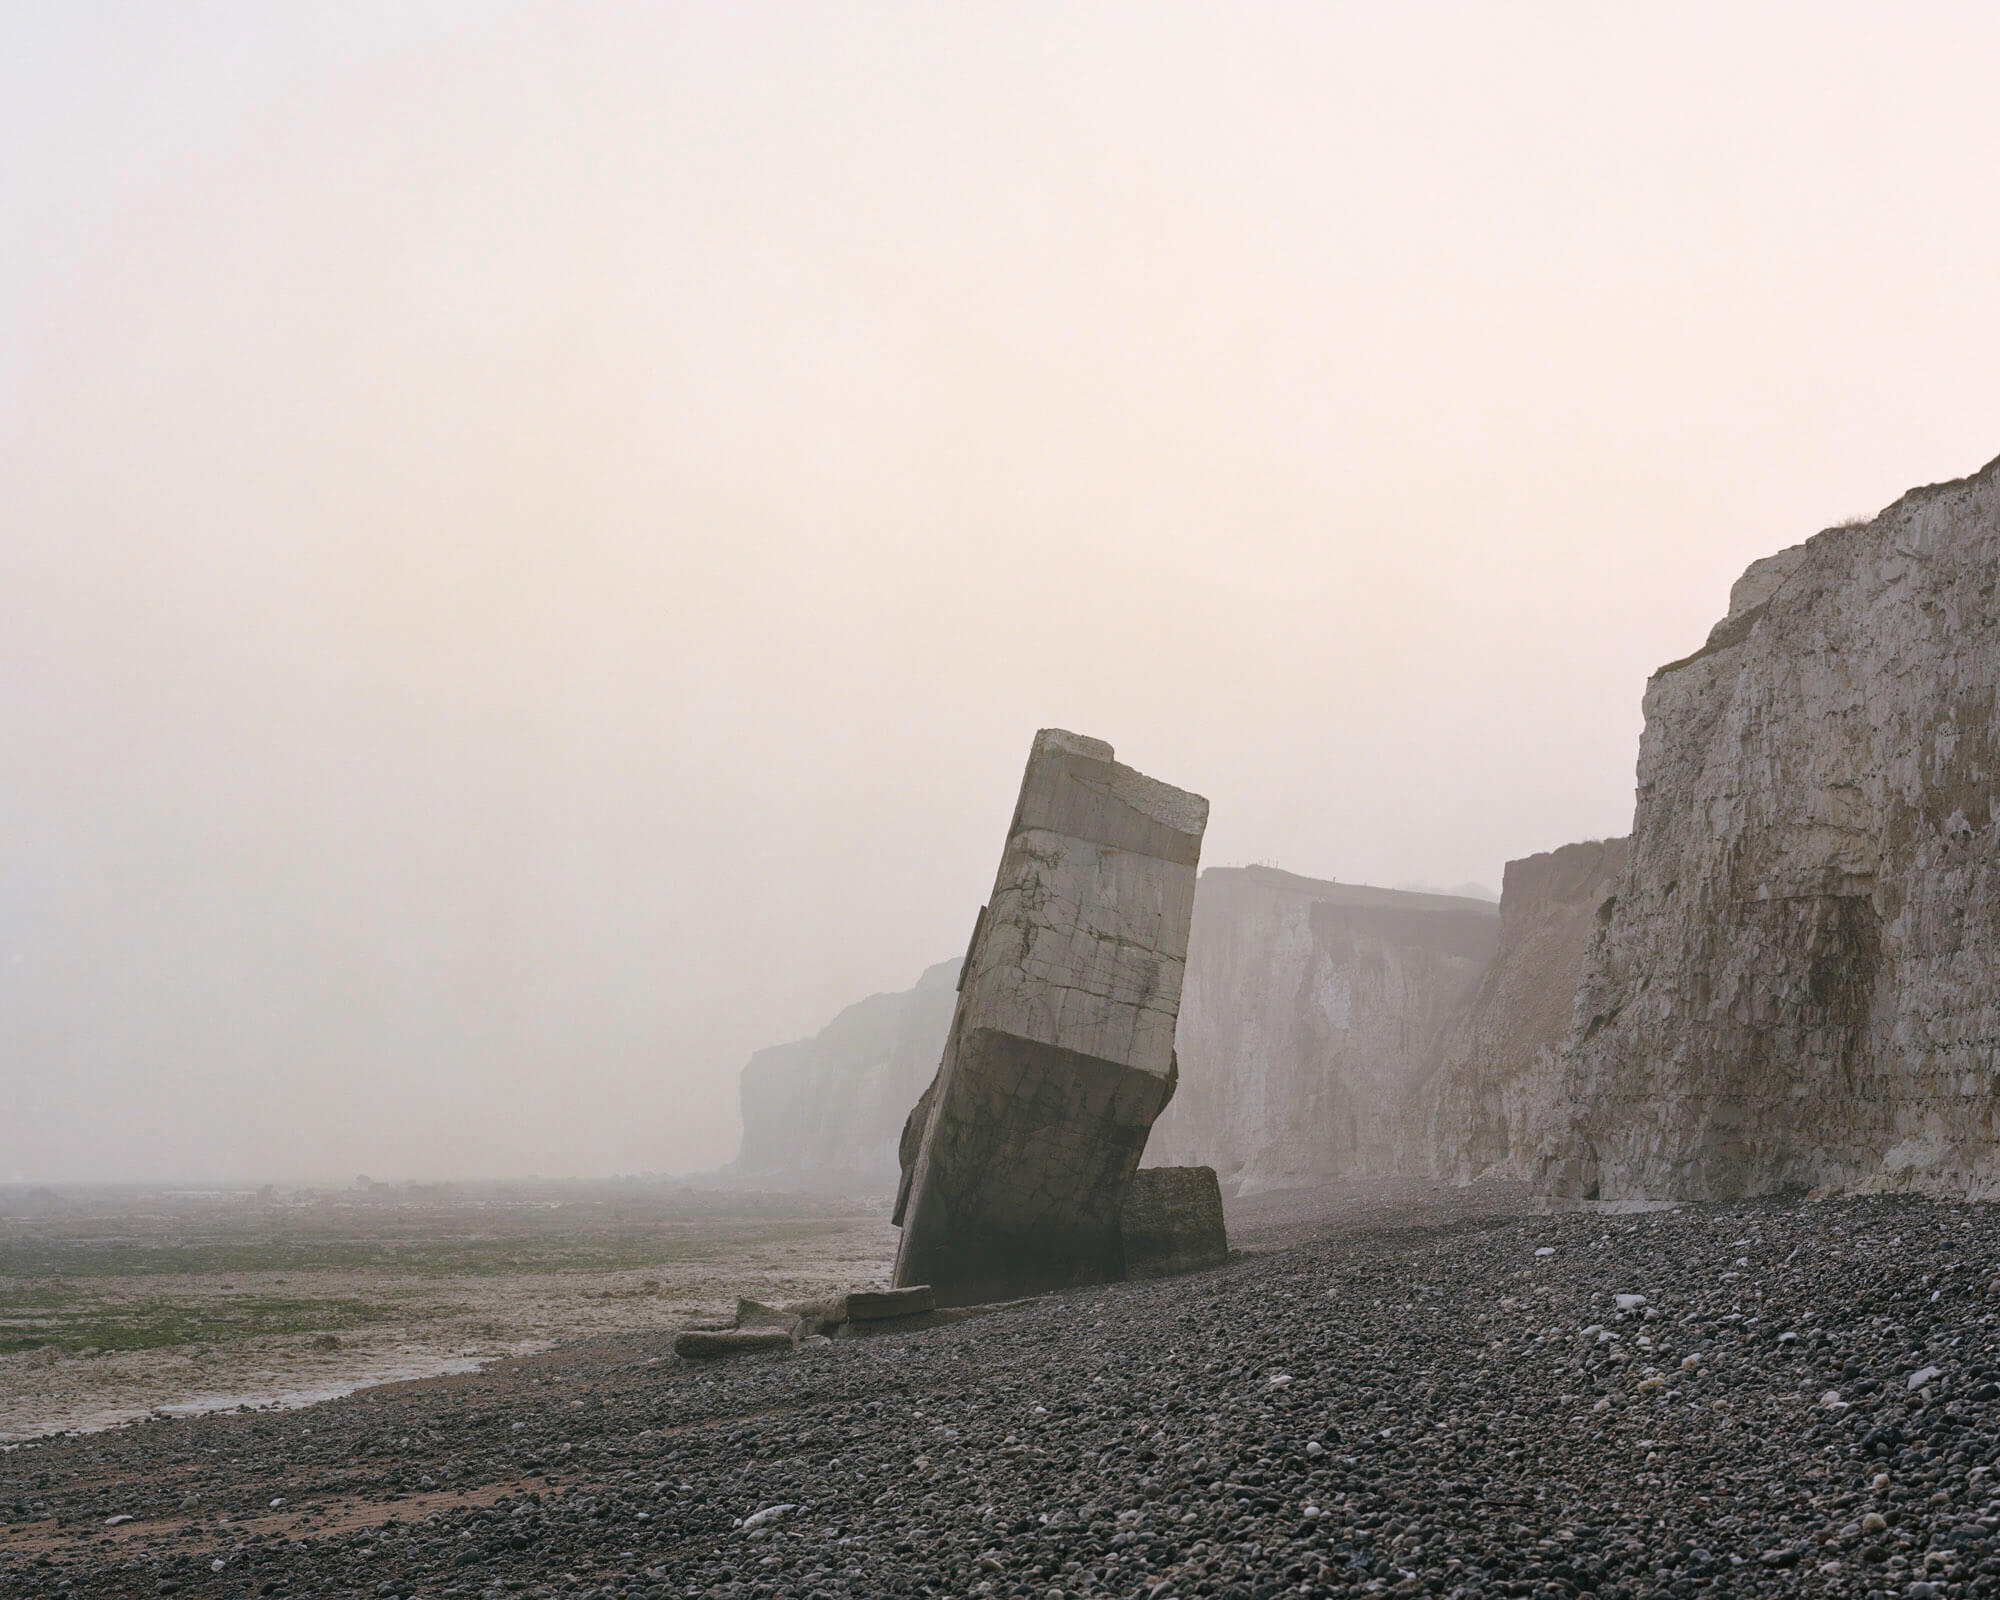 Sainte-Marguerite-sur-mer, Upper Normandy, France. 2012 Marc Wilson the last stand the south west collective of photography